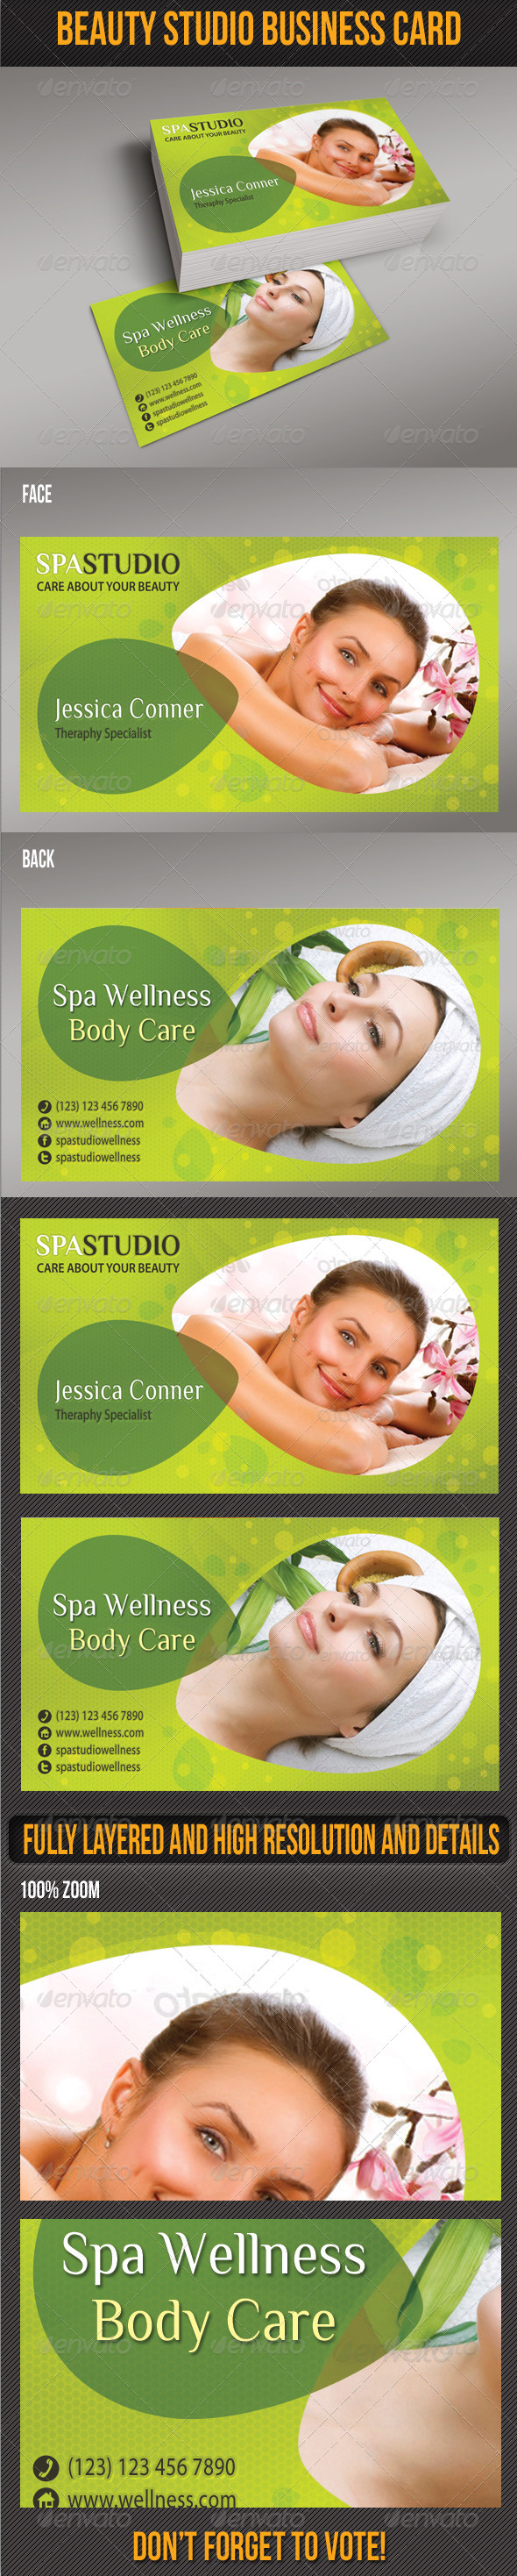 Spa Studio Business Card 02 - Creative Business Cards